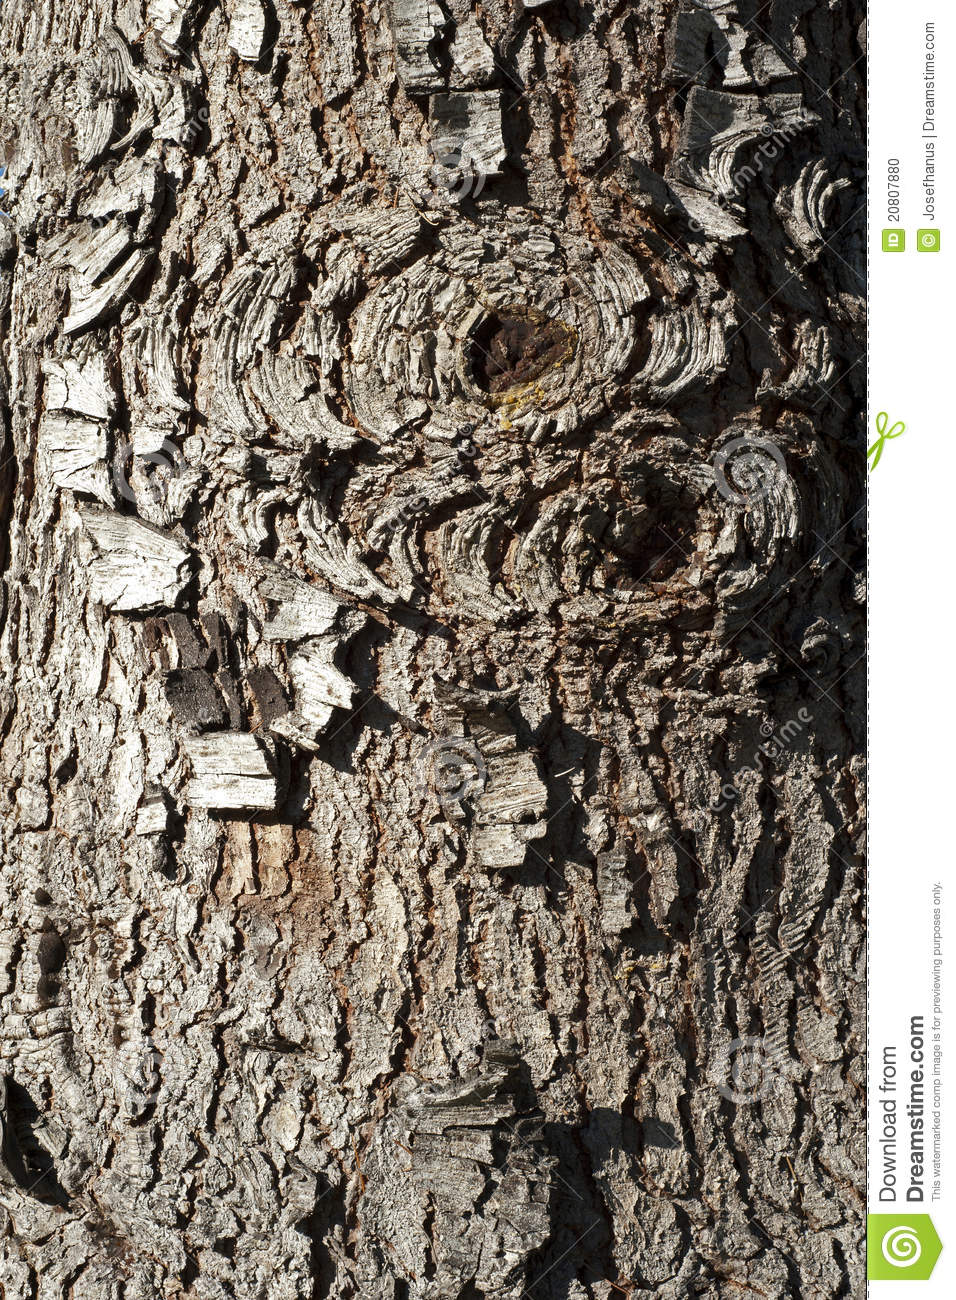 Old rind of Red Spruce tree